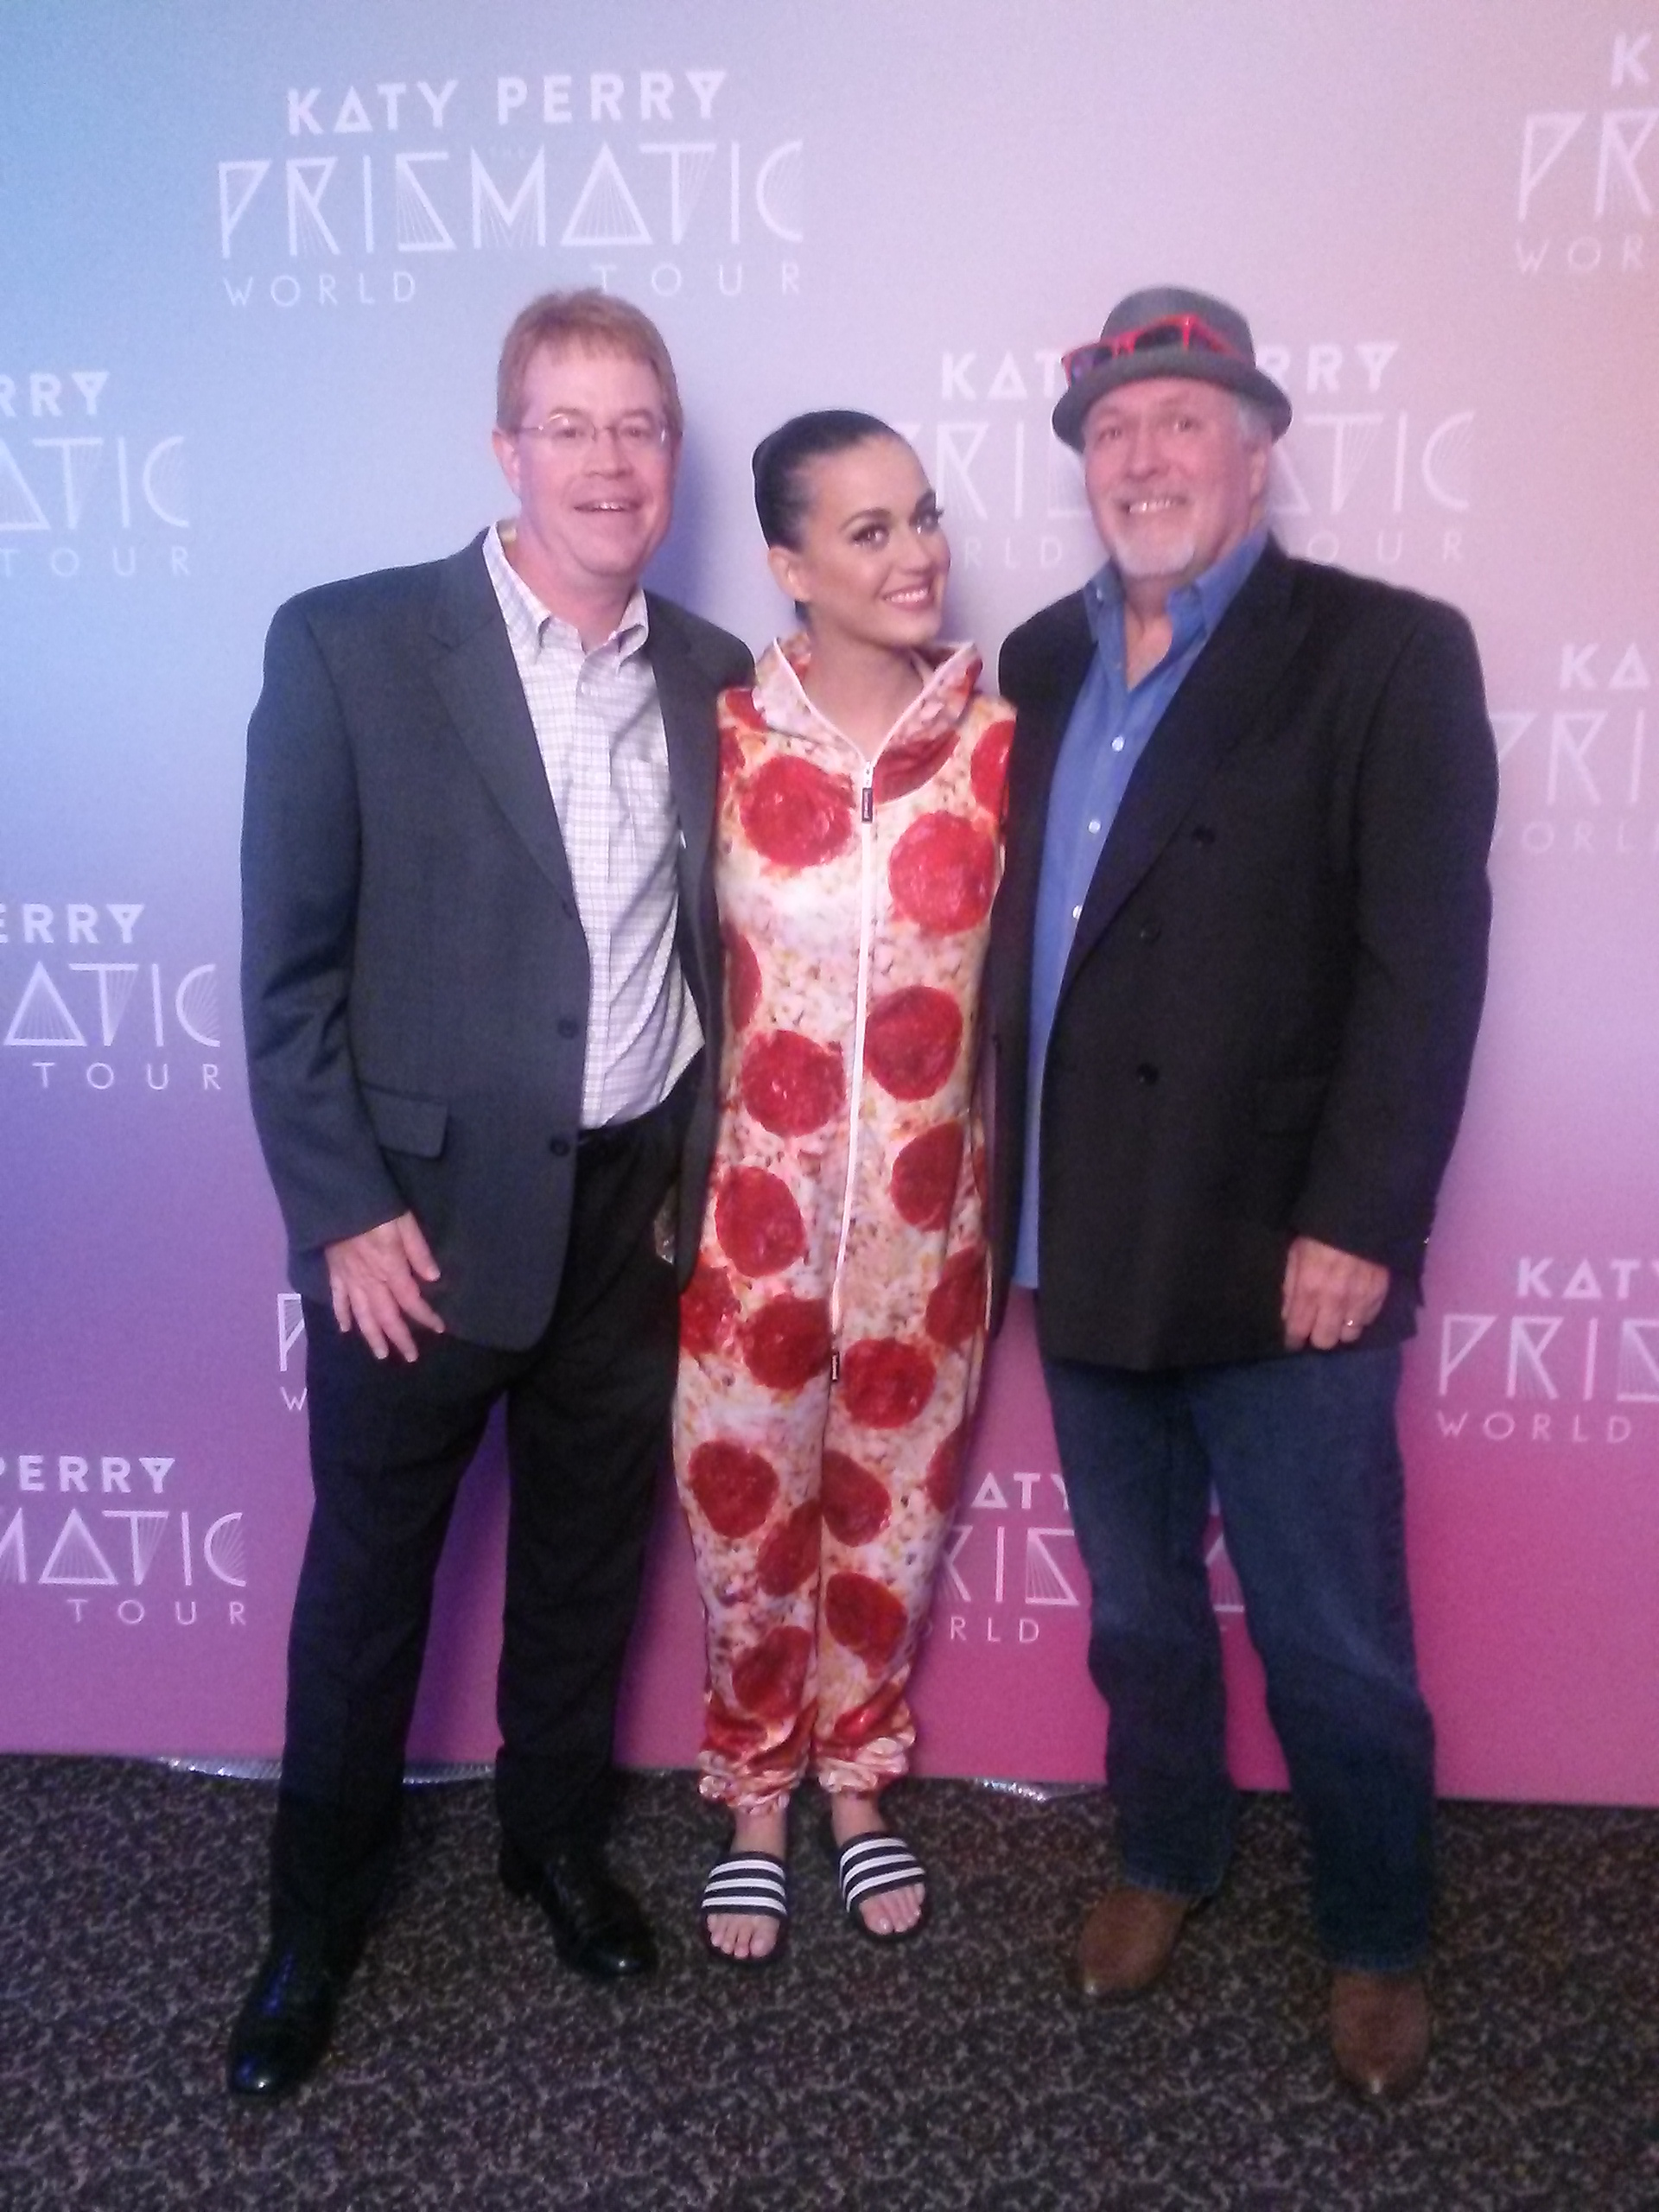 1matters How Katy Perry Housed 22 Vets Sparked Operation Mid